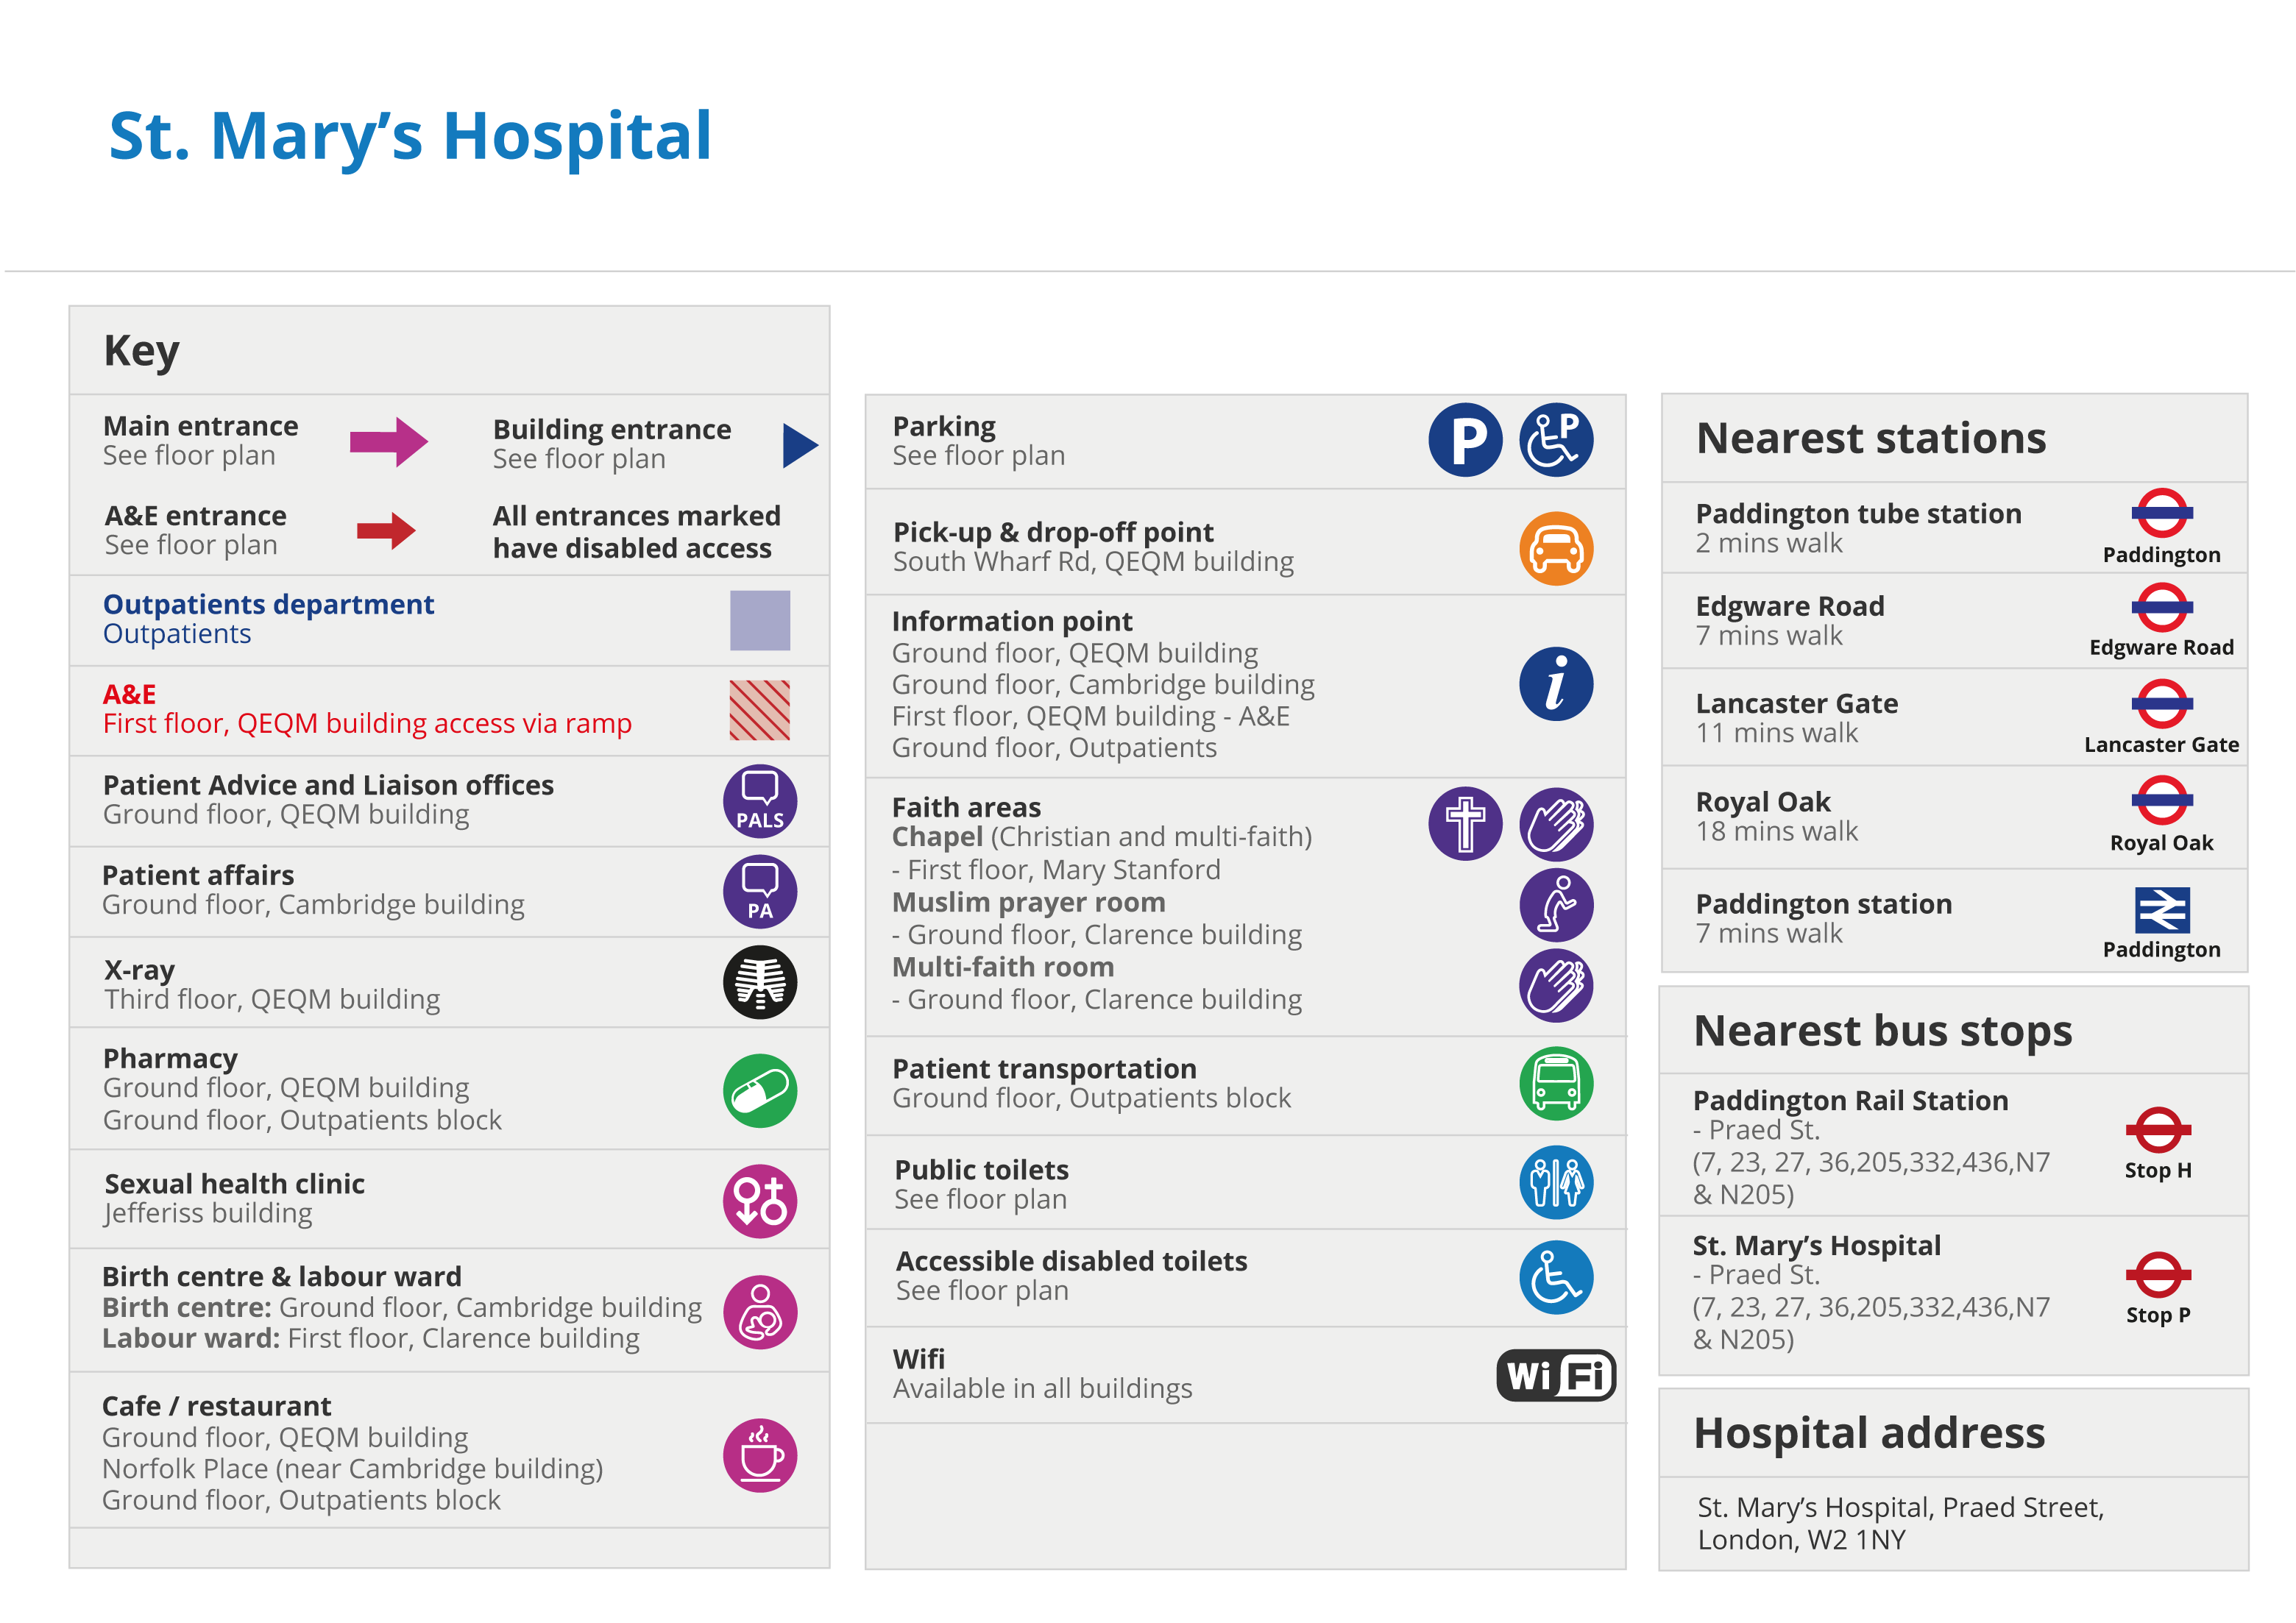 St Mary's Hospital key map